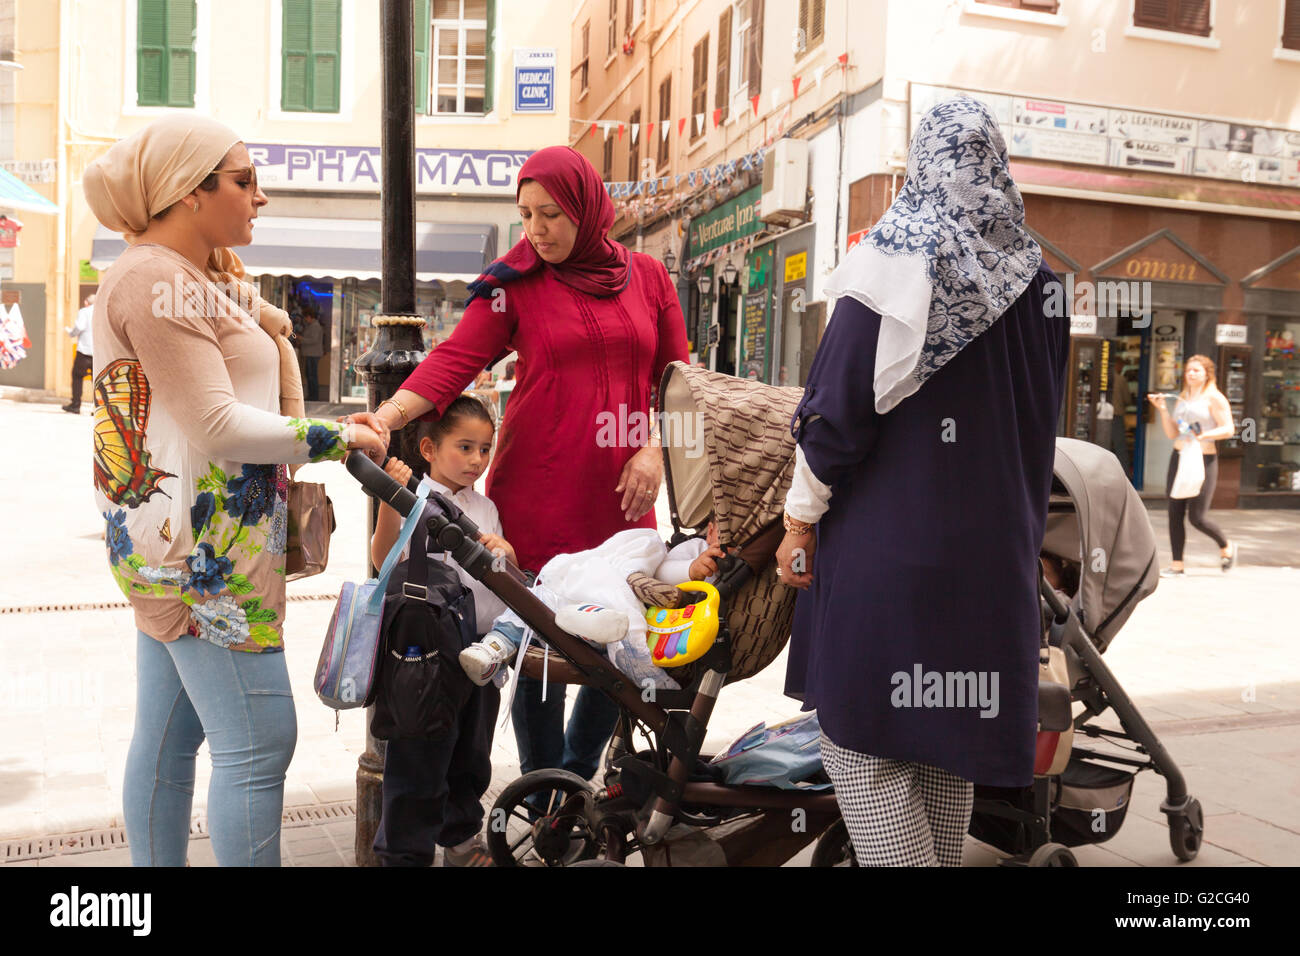 Muslim family in Main Street, Gibraltar, Europe. Concept of European Immigration - Stock Image